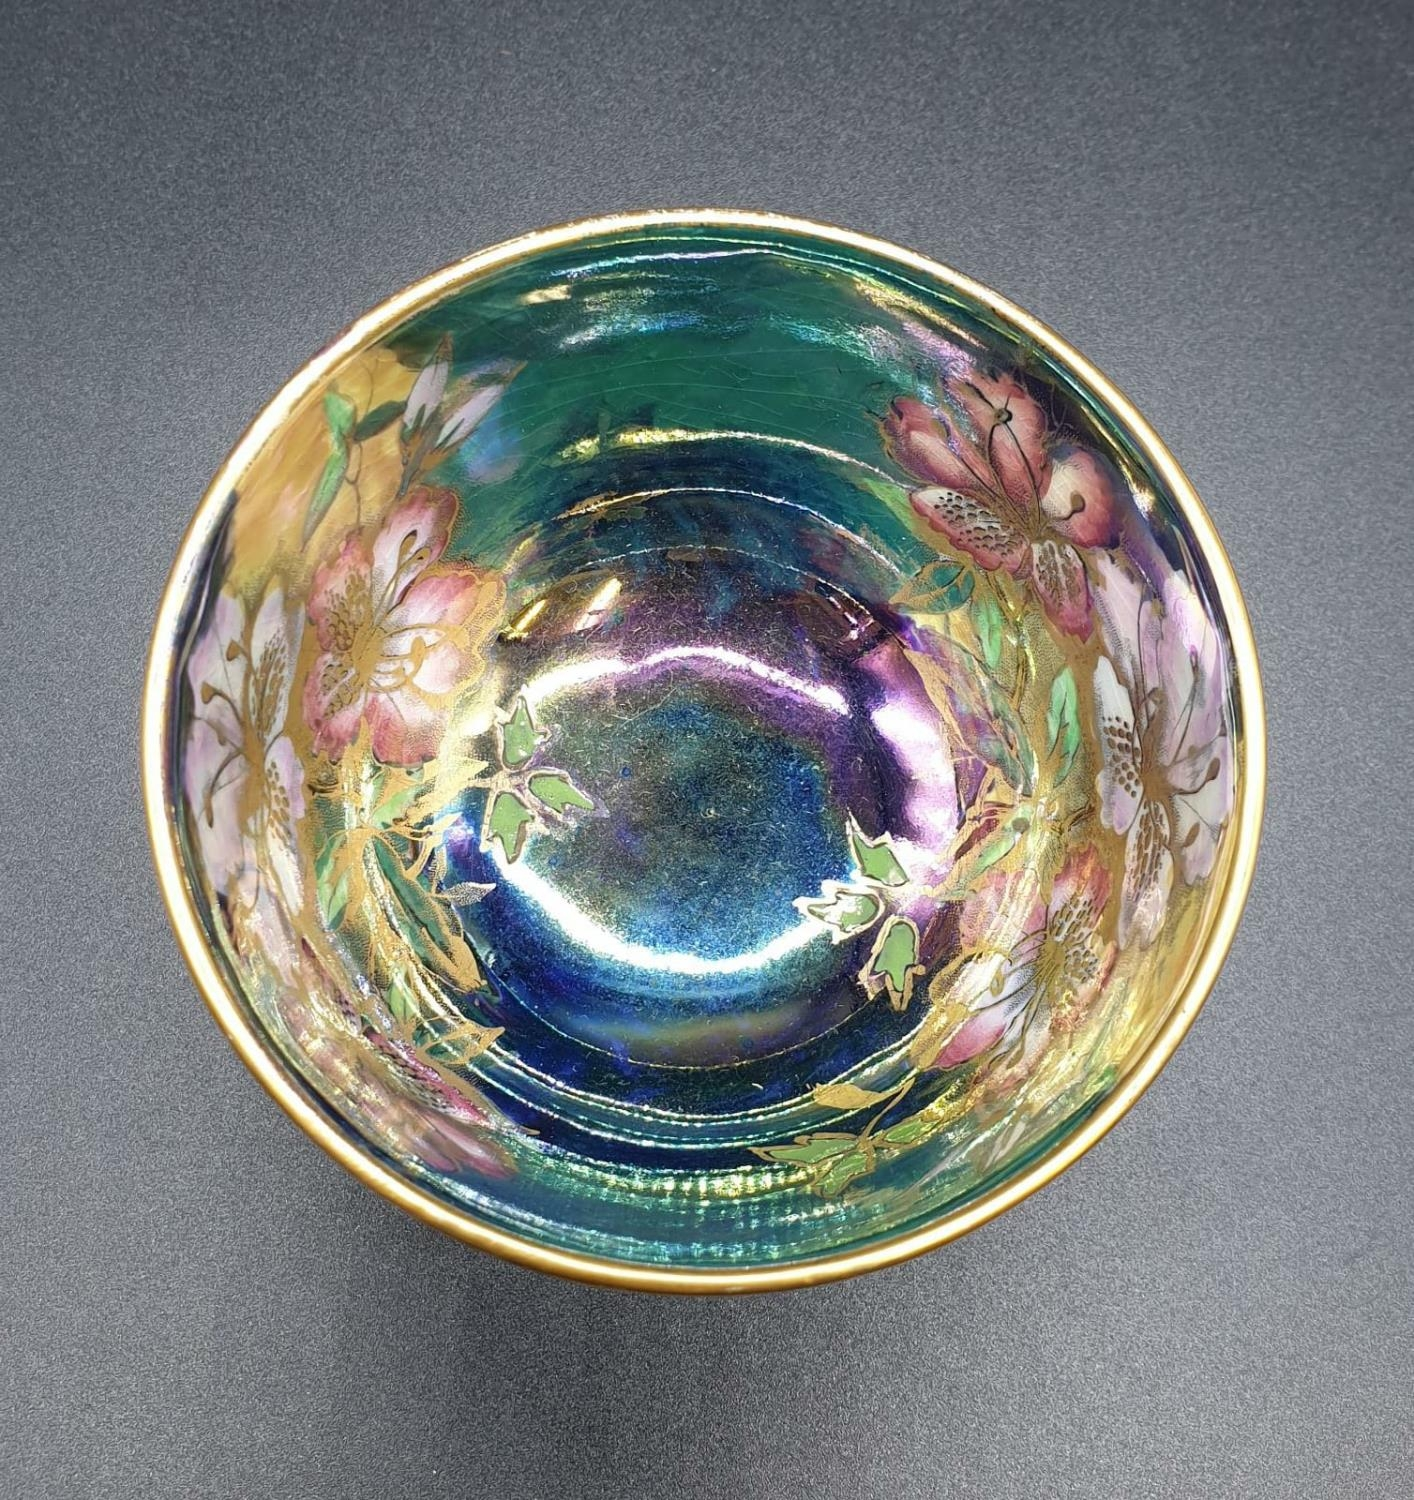 Collection of small bowls, English, Irish and Oriental. Largest bowl is 10cm in diameter. All good - Image 3 of 17